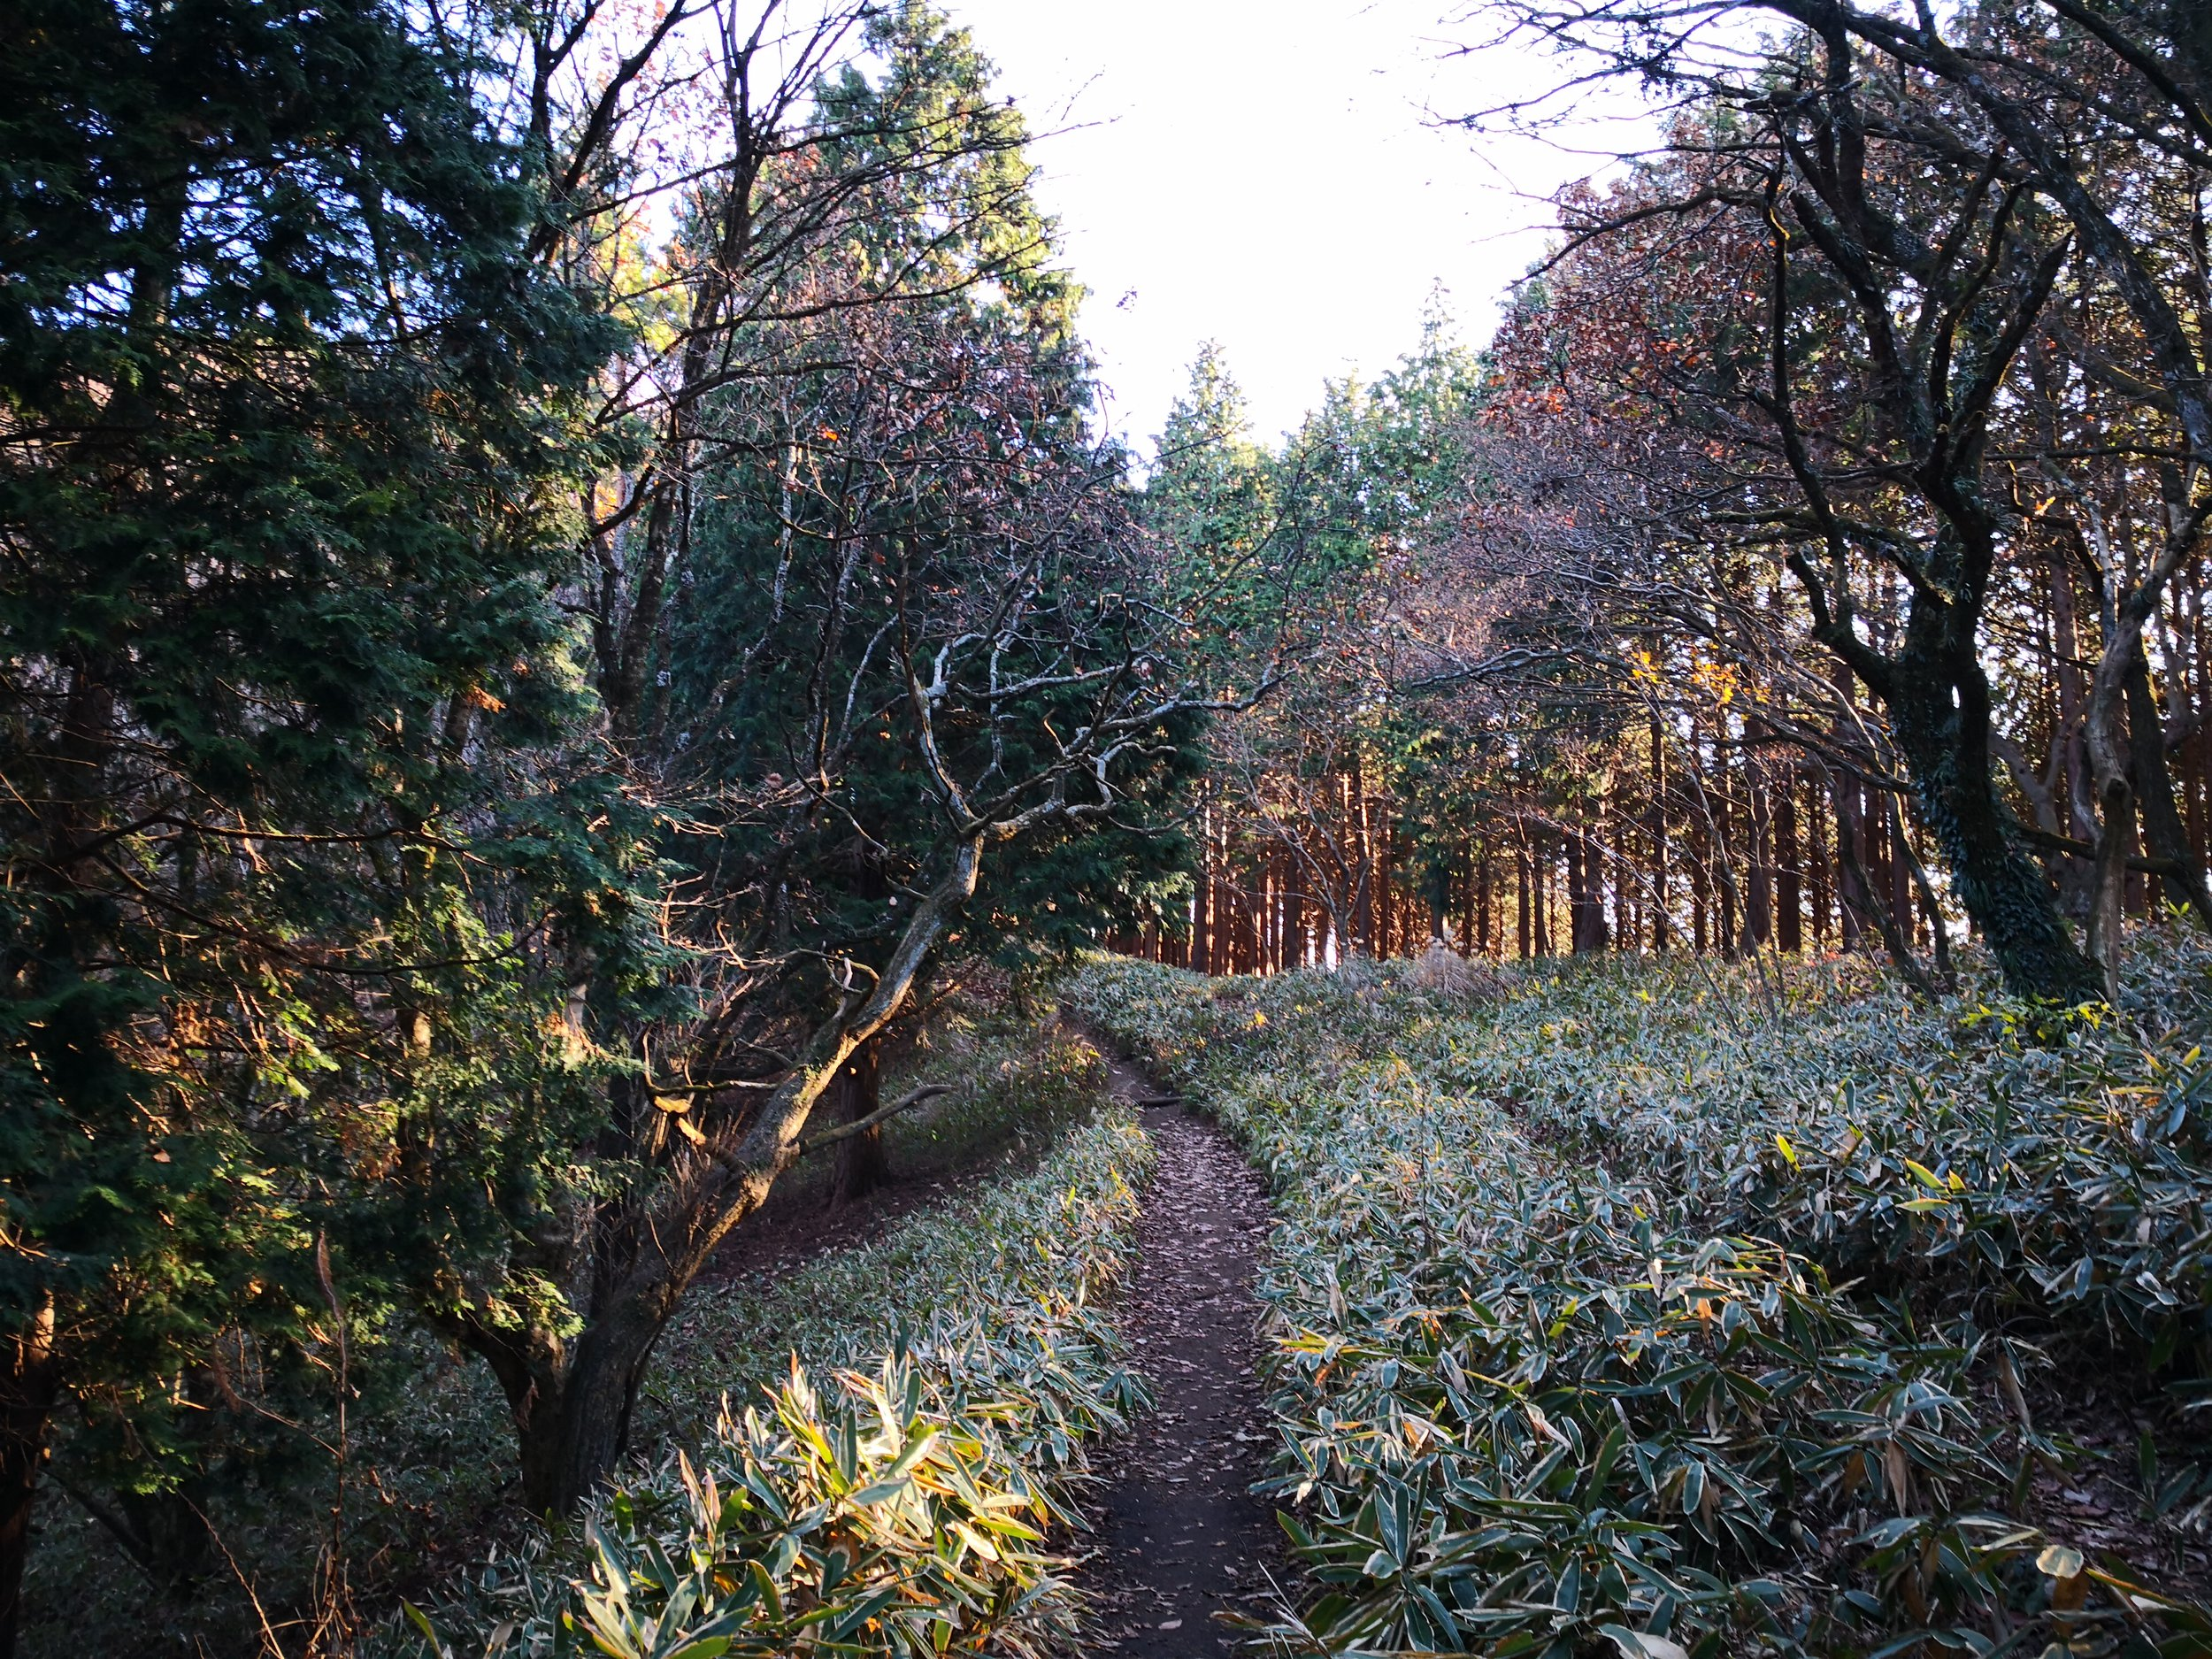 Woodland trail on a chilly December day